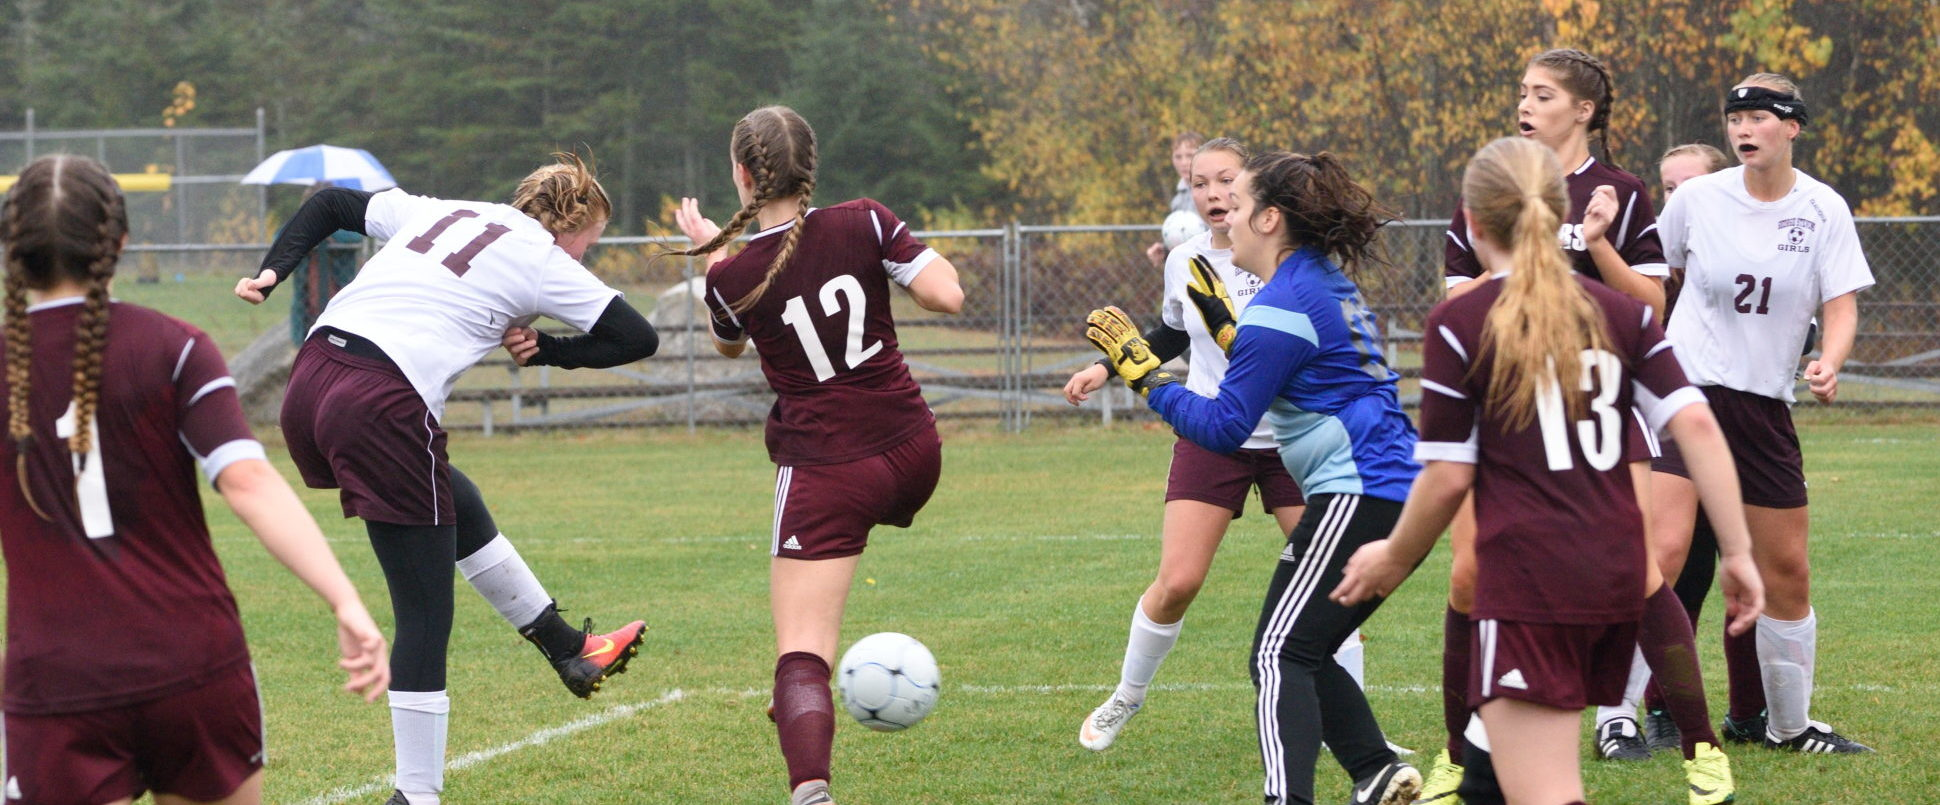 Eagles Boys And Girls Advance To Face Orono In Qfs Penobscot Bay